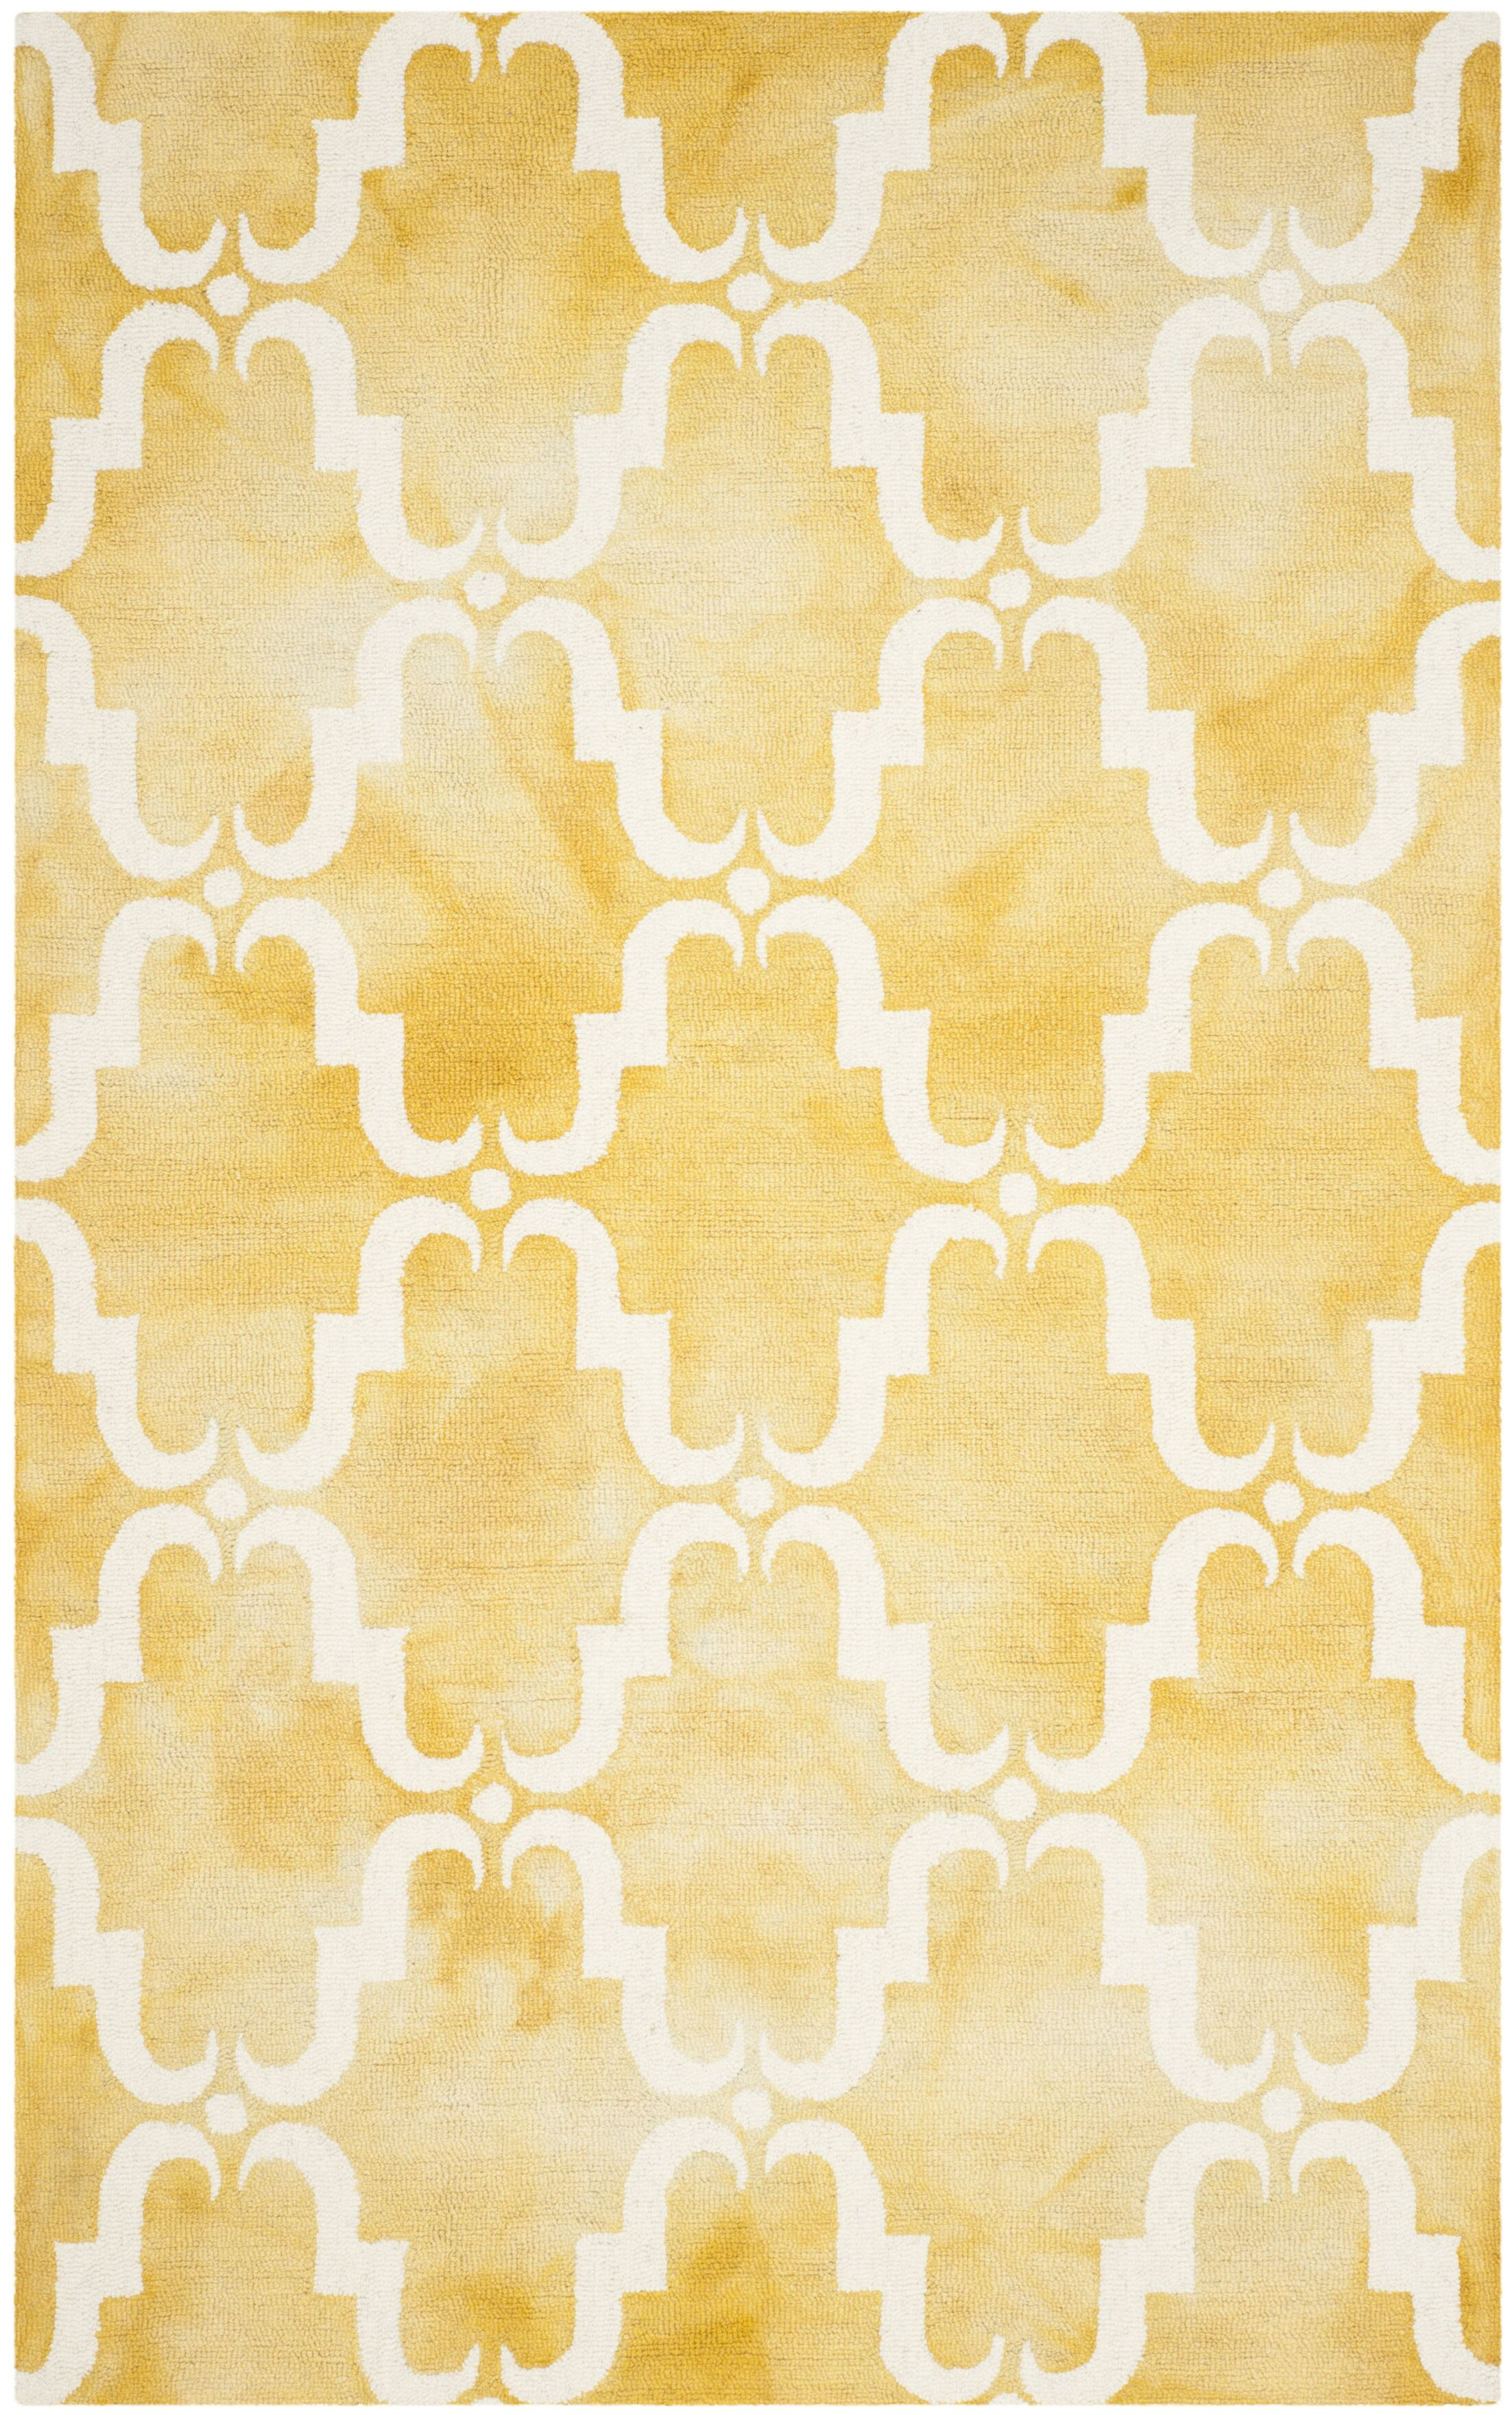 Hand-Tufted Gold/Ivory Area Rug Rug Size: Rectangle 9' x 12'